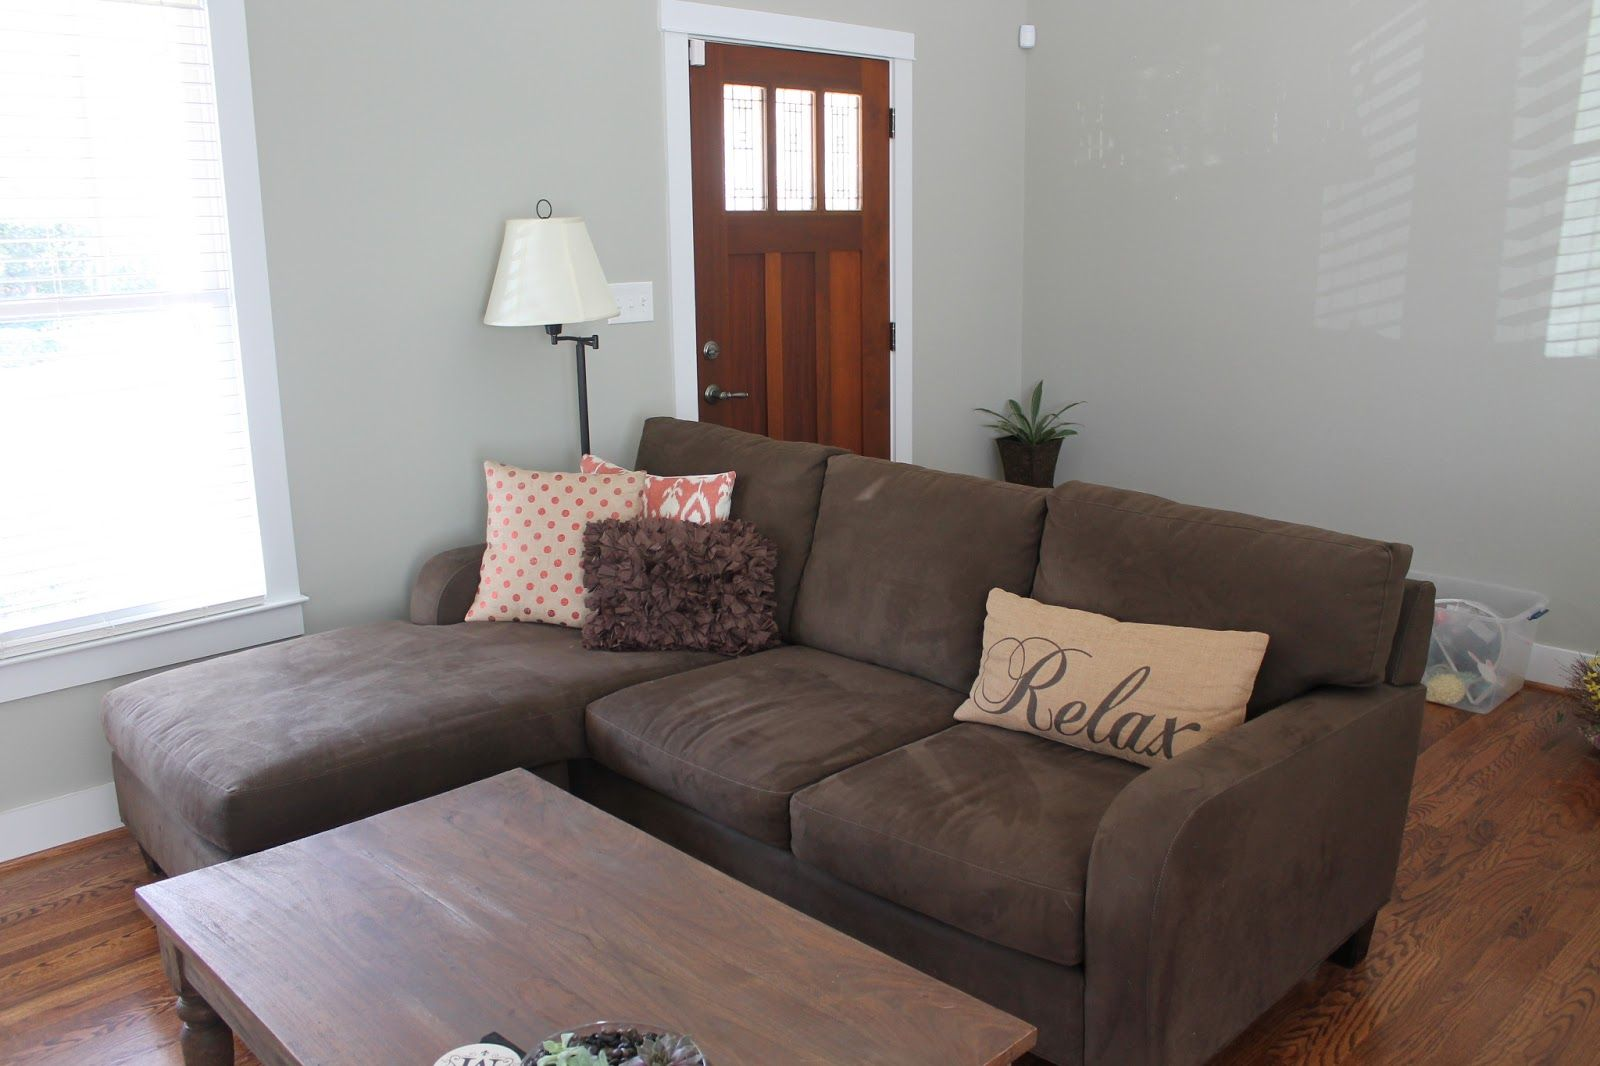 Can you wash a microfiber couch? - http://furniture.arunahotel.net/can-you-wash-a-microfiber-couch/ : #InteriorDesigns There are different couch option you should think carefully, and you will love so much having very good microfiber couch, it will be very good for your indoor and outdoor space. Can you wash a microfiber couch? If a microfiber sofa is marked with a label of W, is safe to use water for cleaning. H...